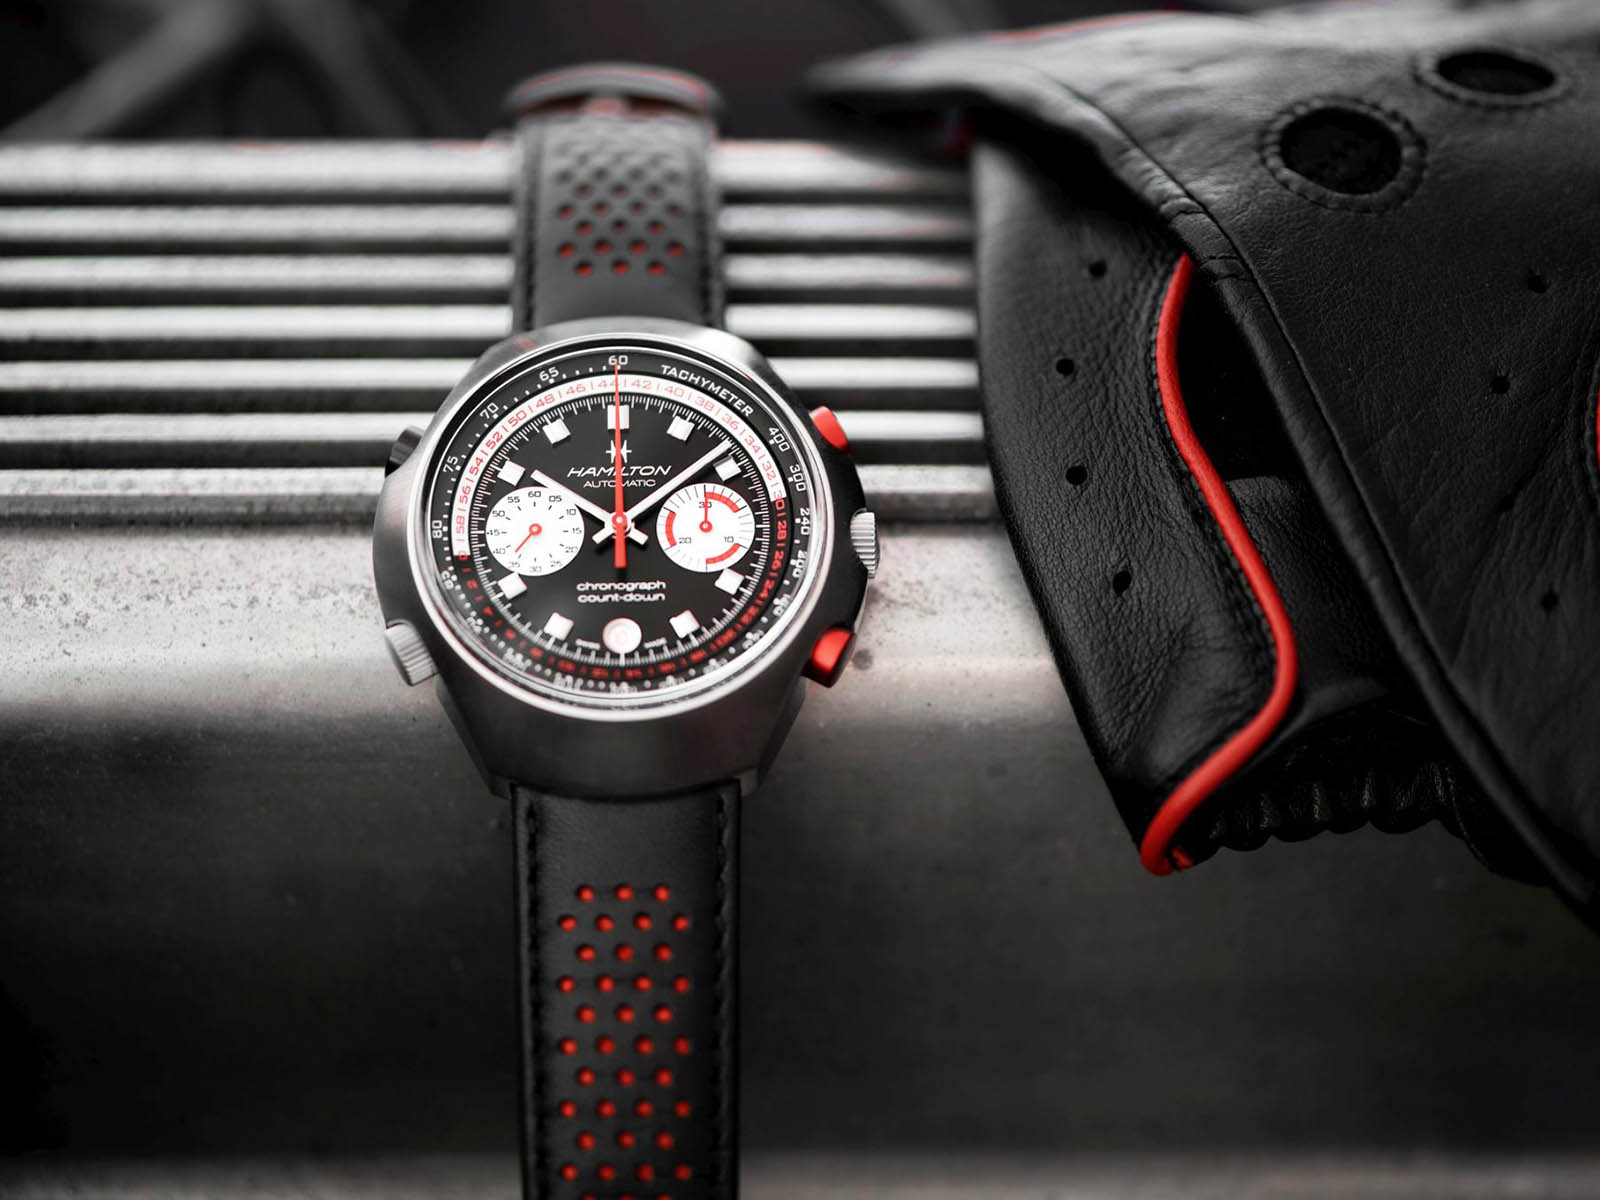 h51616731-hamilton-chrono-matic-50-auto-chrono-limited-edition-2.jpg